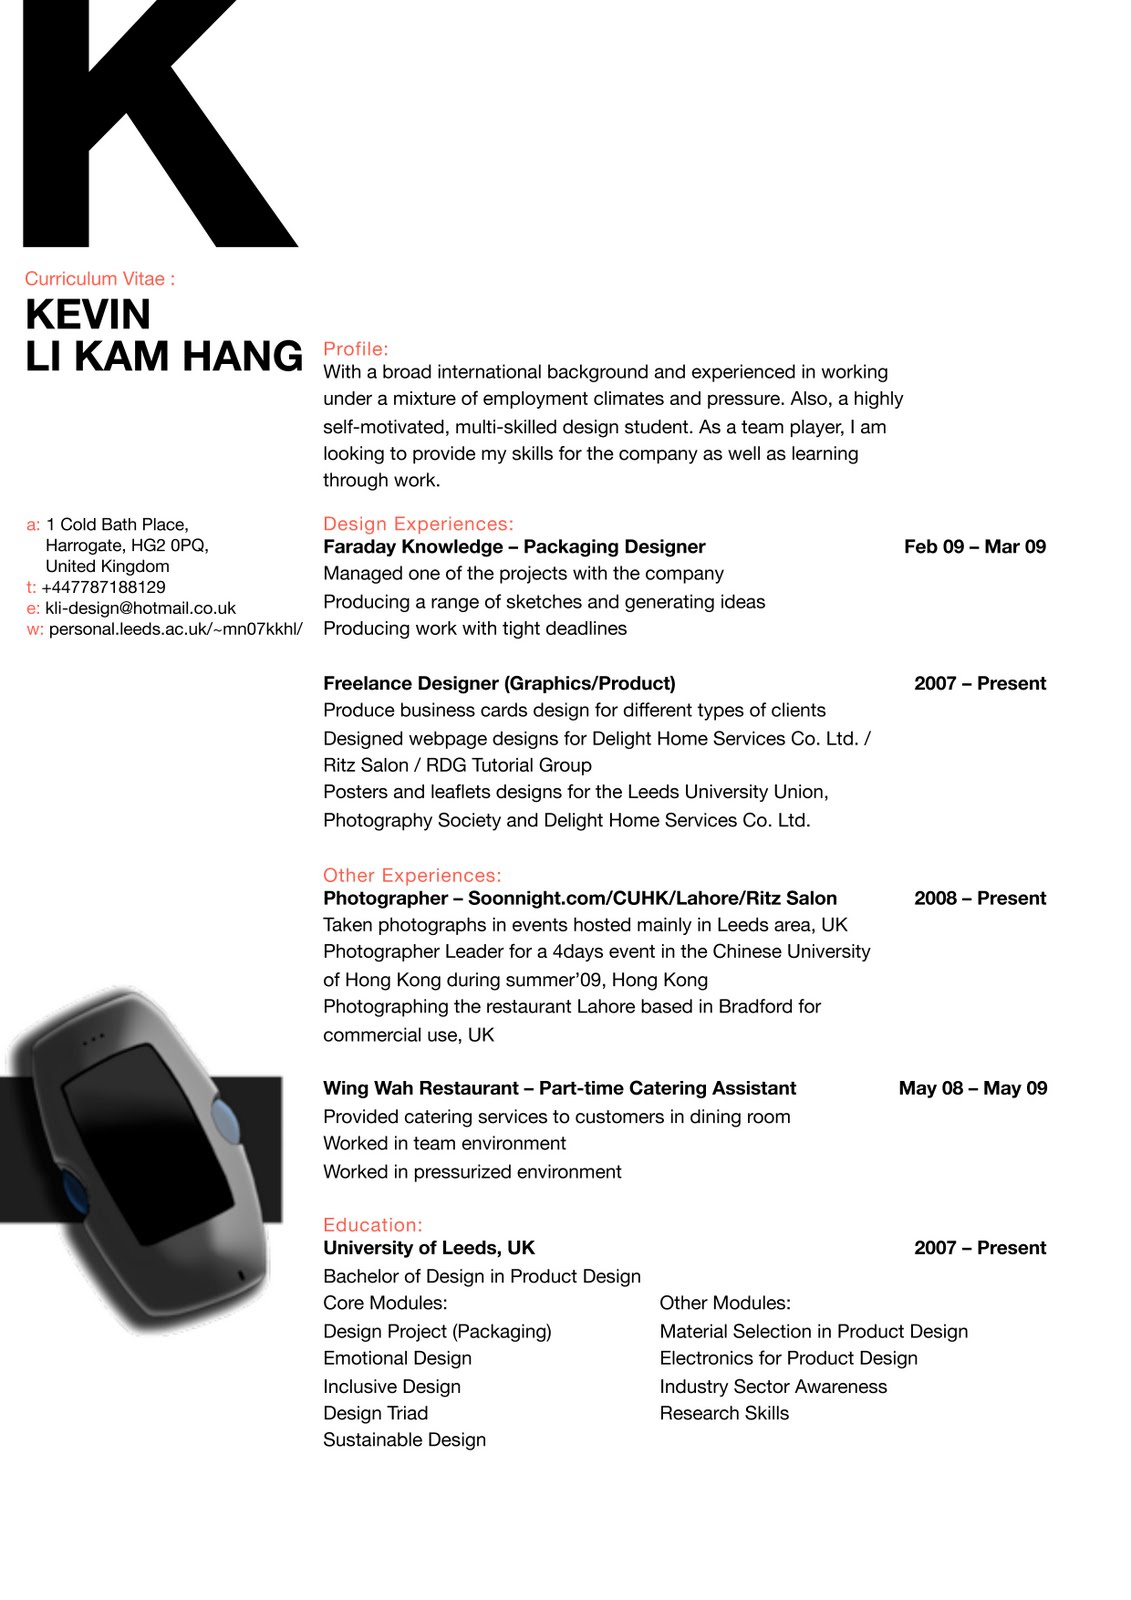 antonis skitsas architecture copy cv personally i surfed online and looked into a range of cv s available and then added my own creativity into it to make it my own